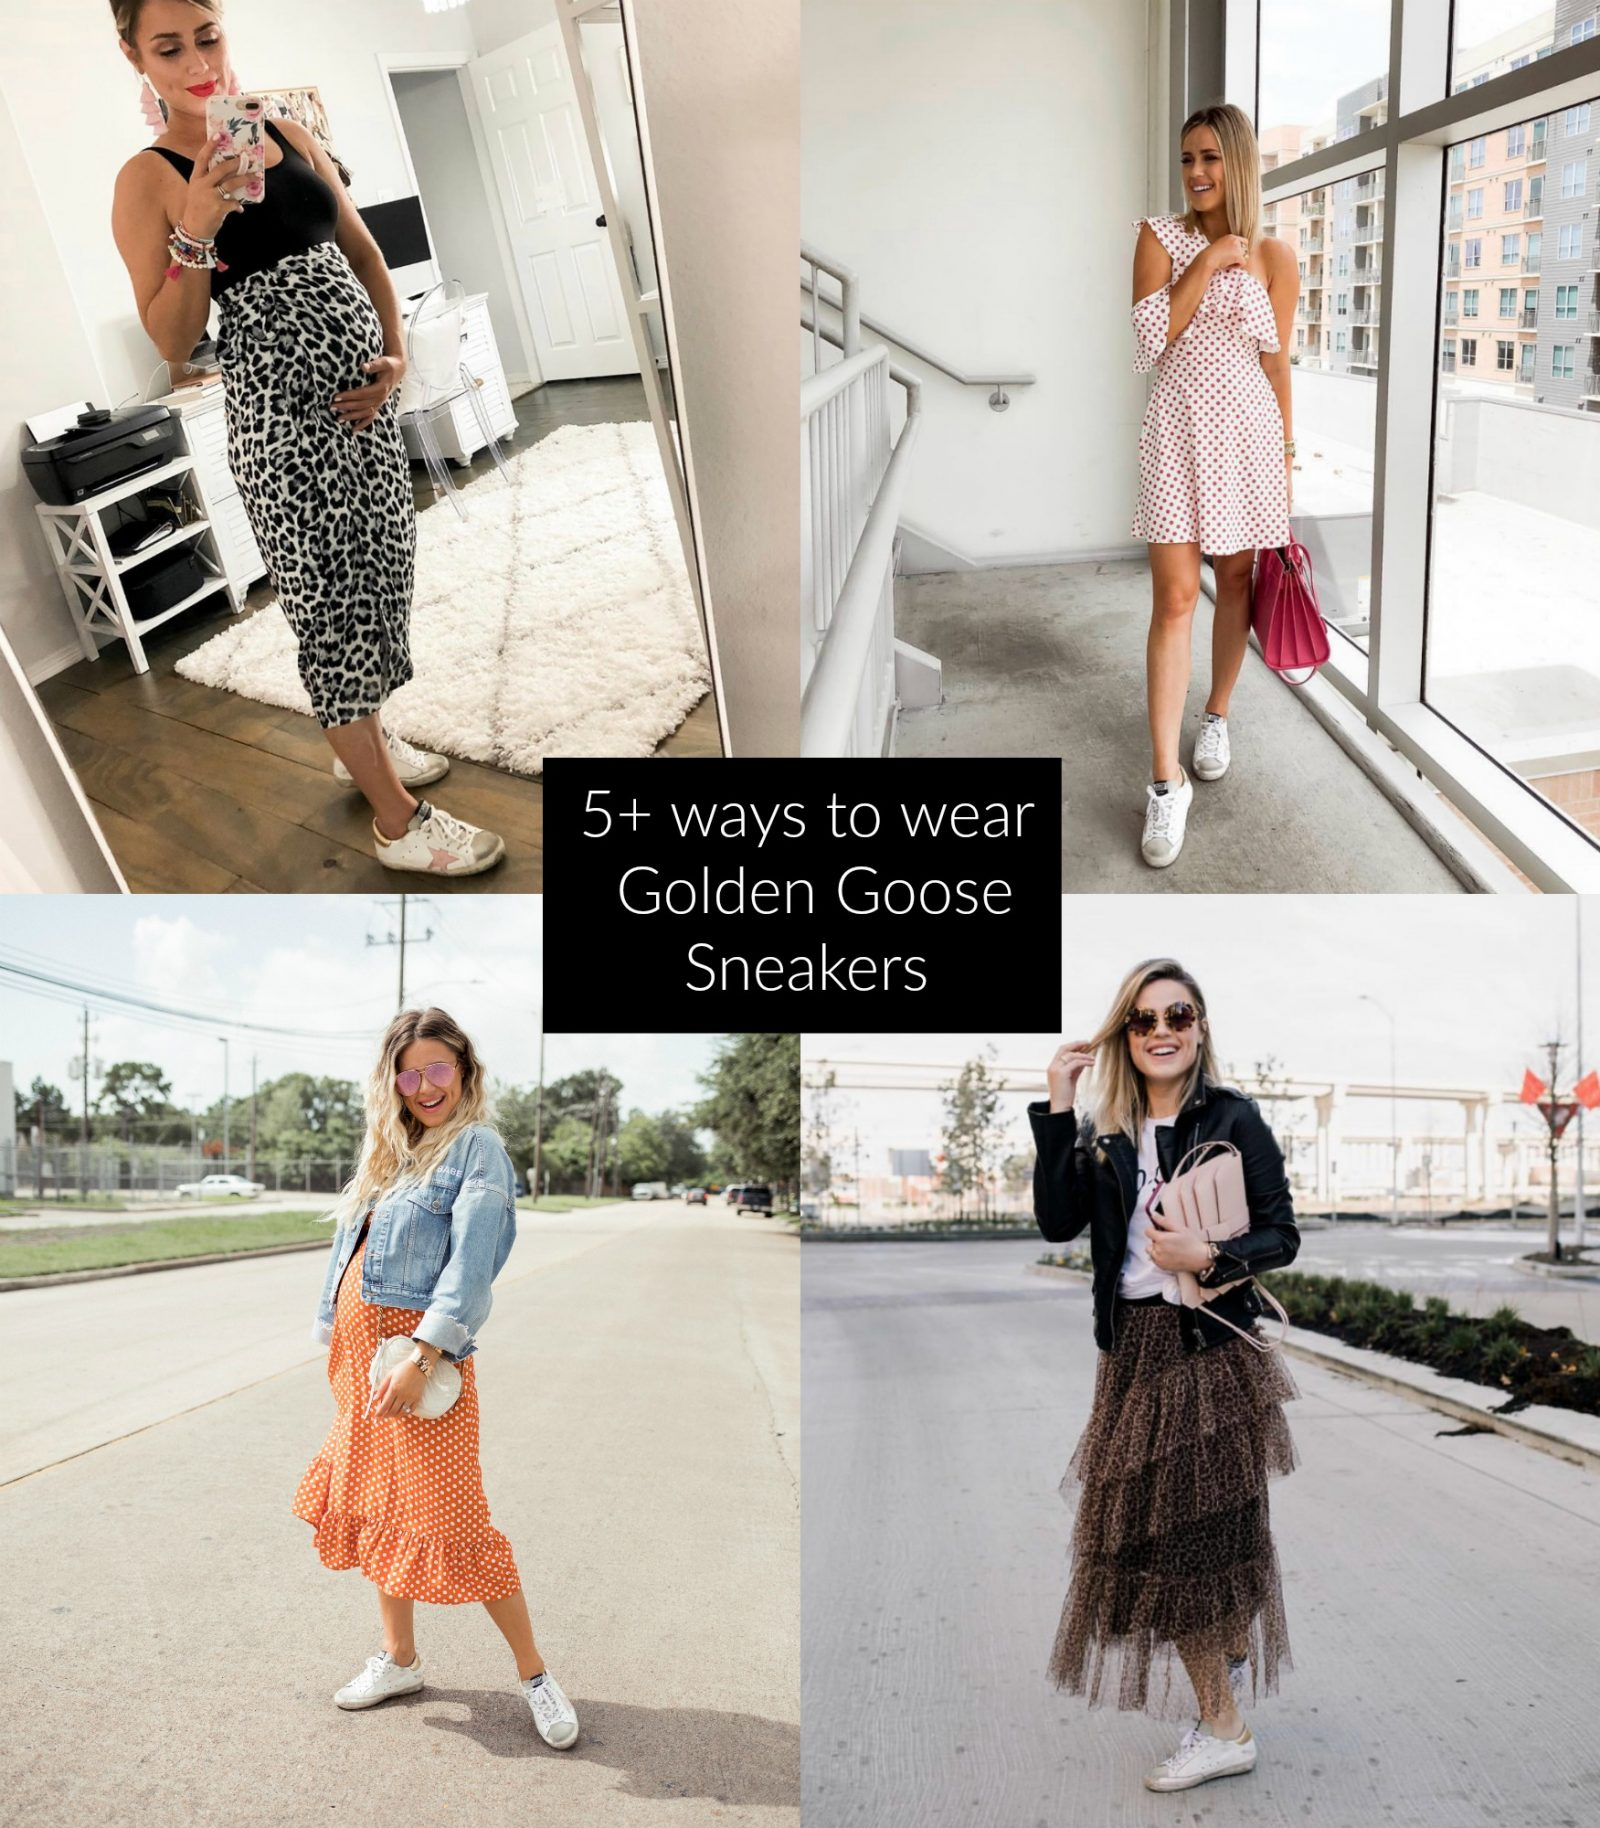 Houston blogger Uptown with Elly Brown shares over 5 different ways on How to Wear Golden Goose Sneakers that are so popular right now!